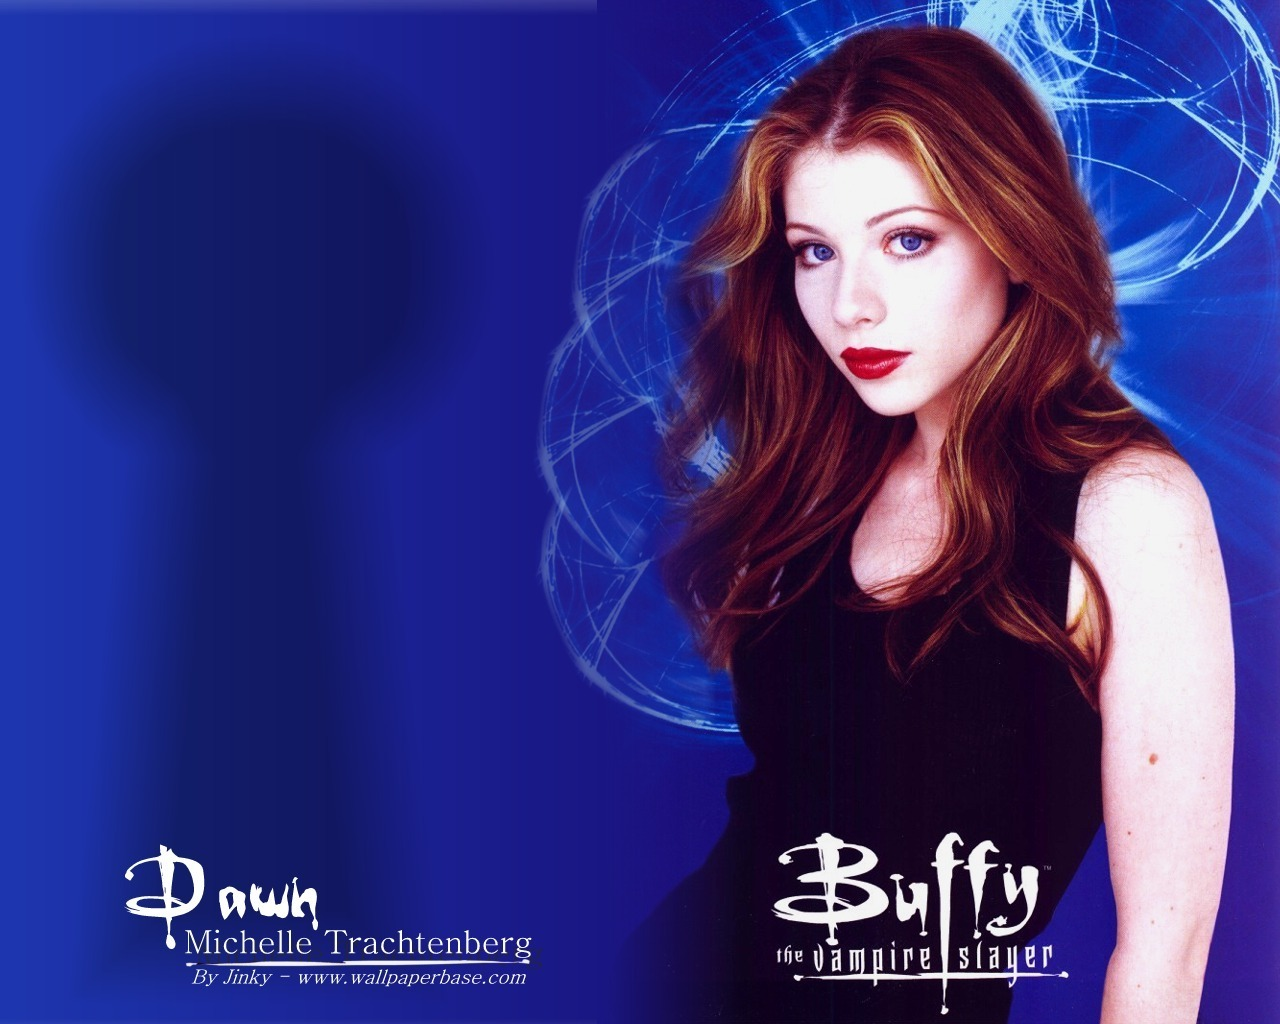 Michelle Tratchenberg - Michelle Trachtenberg Wallpaper (7525431) - Fanpop